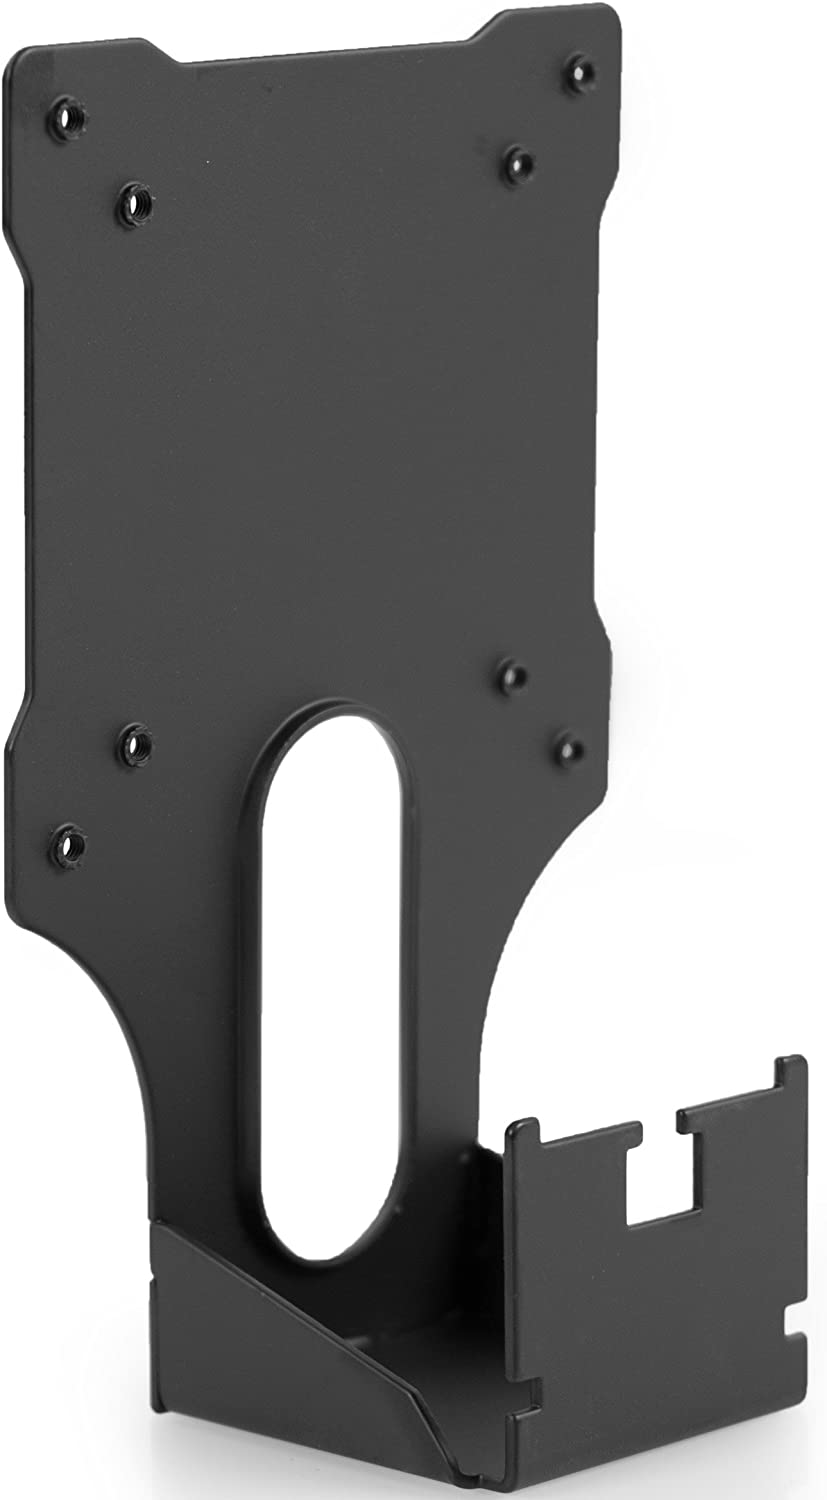 VIVO VESA Bracket Mount Adapter, Only Fits Dell Models S2340L, S2440L, S2340M, S2240L, S2240M (MOUNT-DL02)